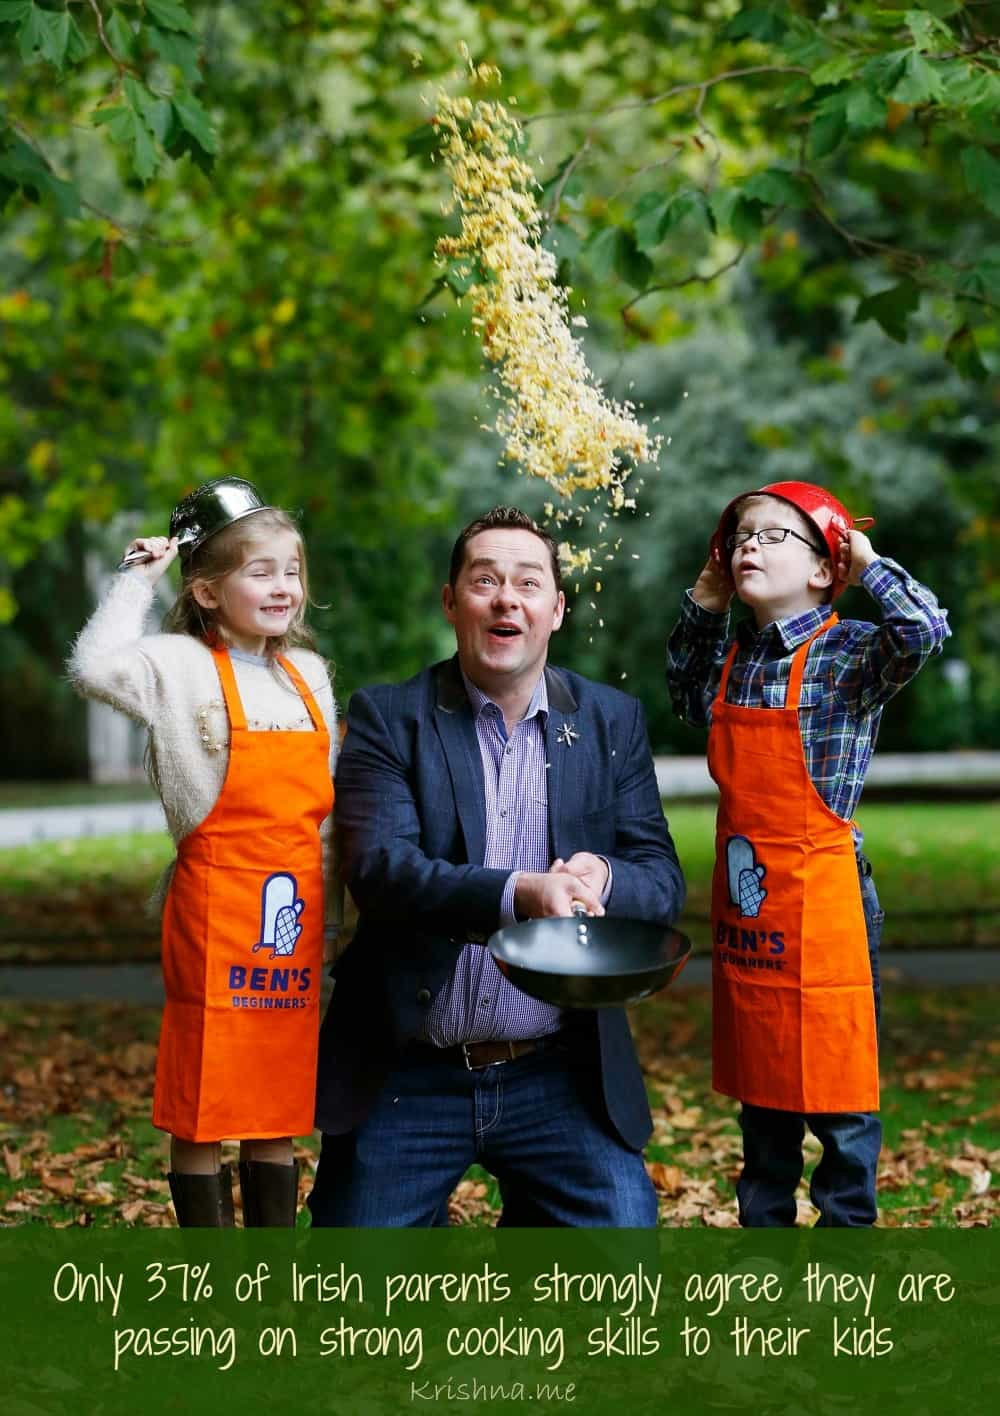 Only 37 percent of Irish parents strongly agree they are passing on strong cooking skills to their kids